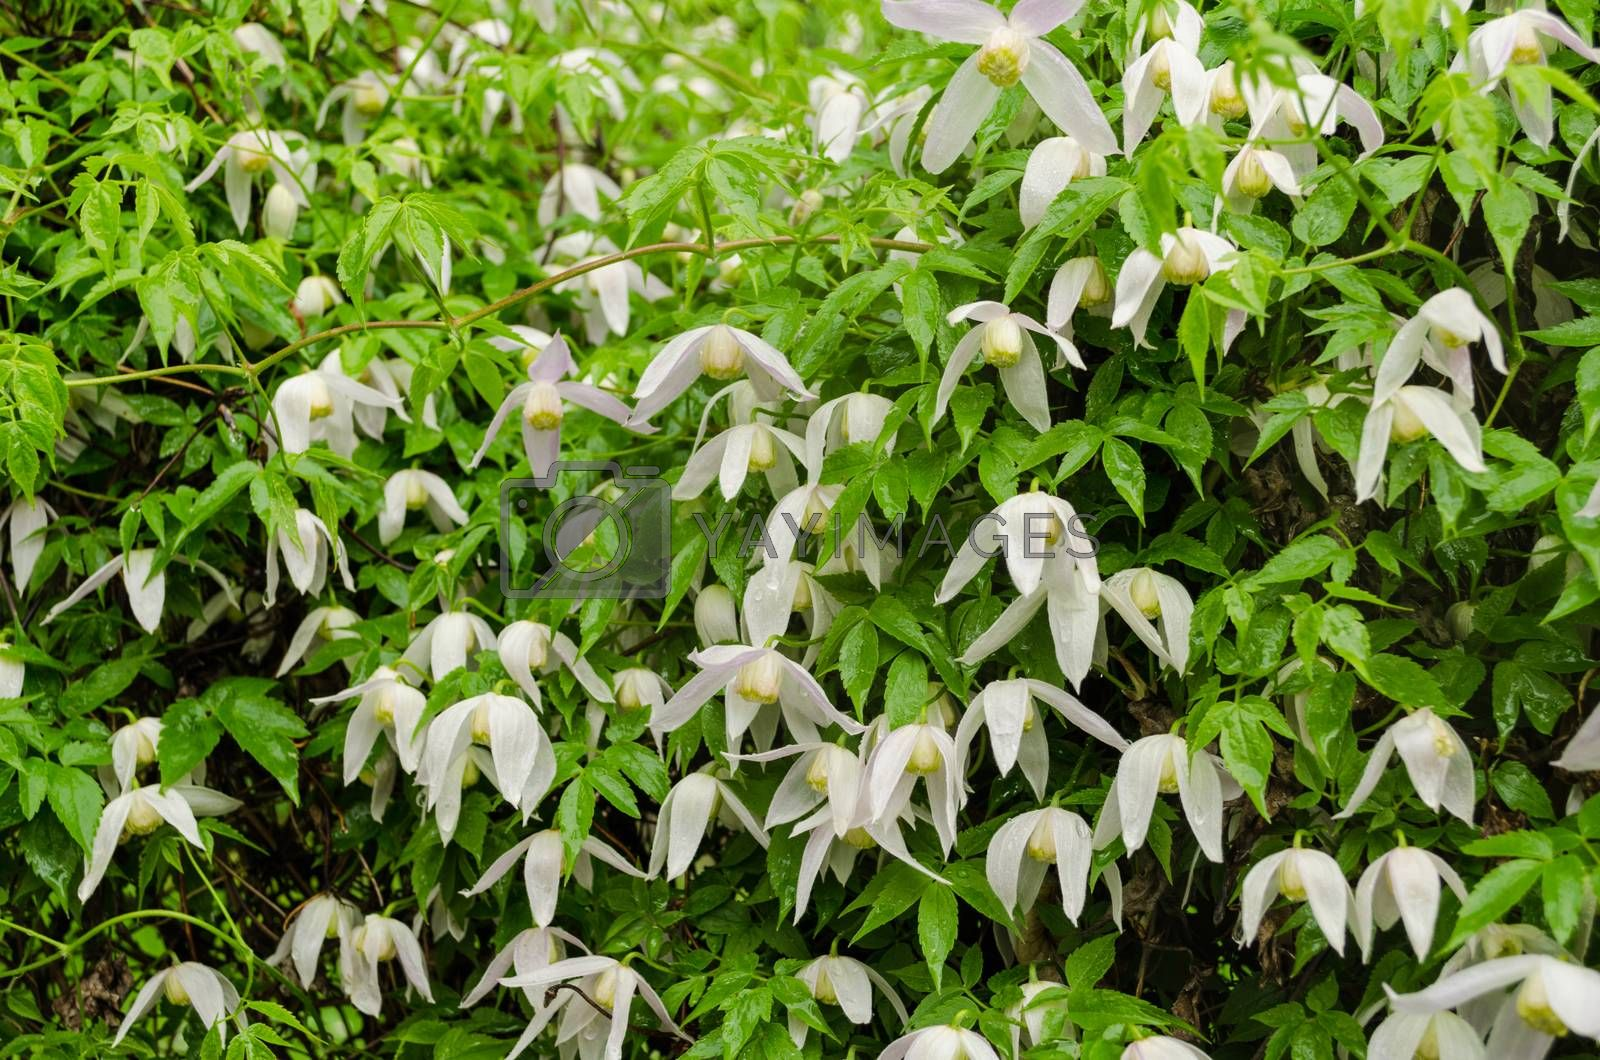 climber garden plant with small white flowers during heavy rain